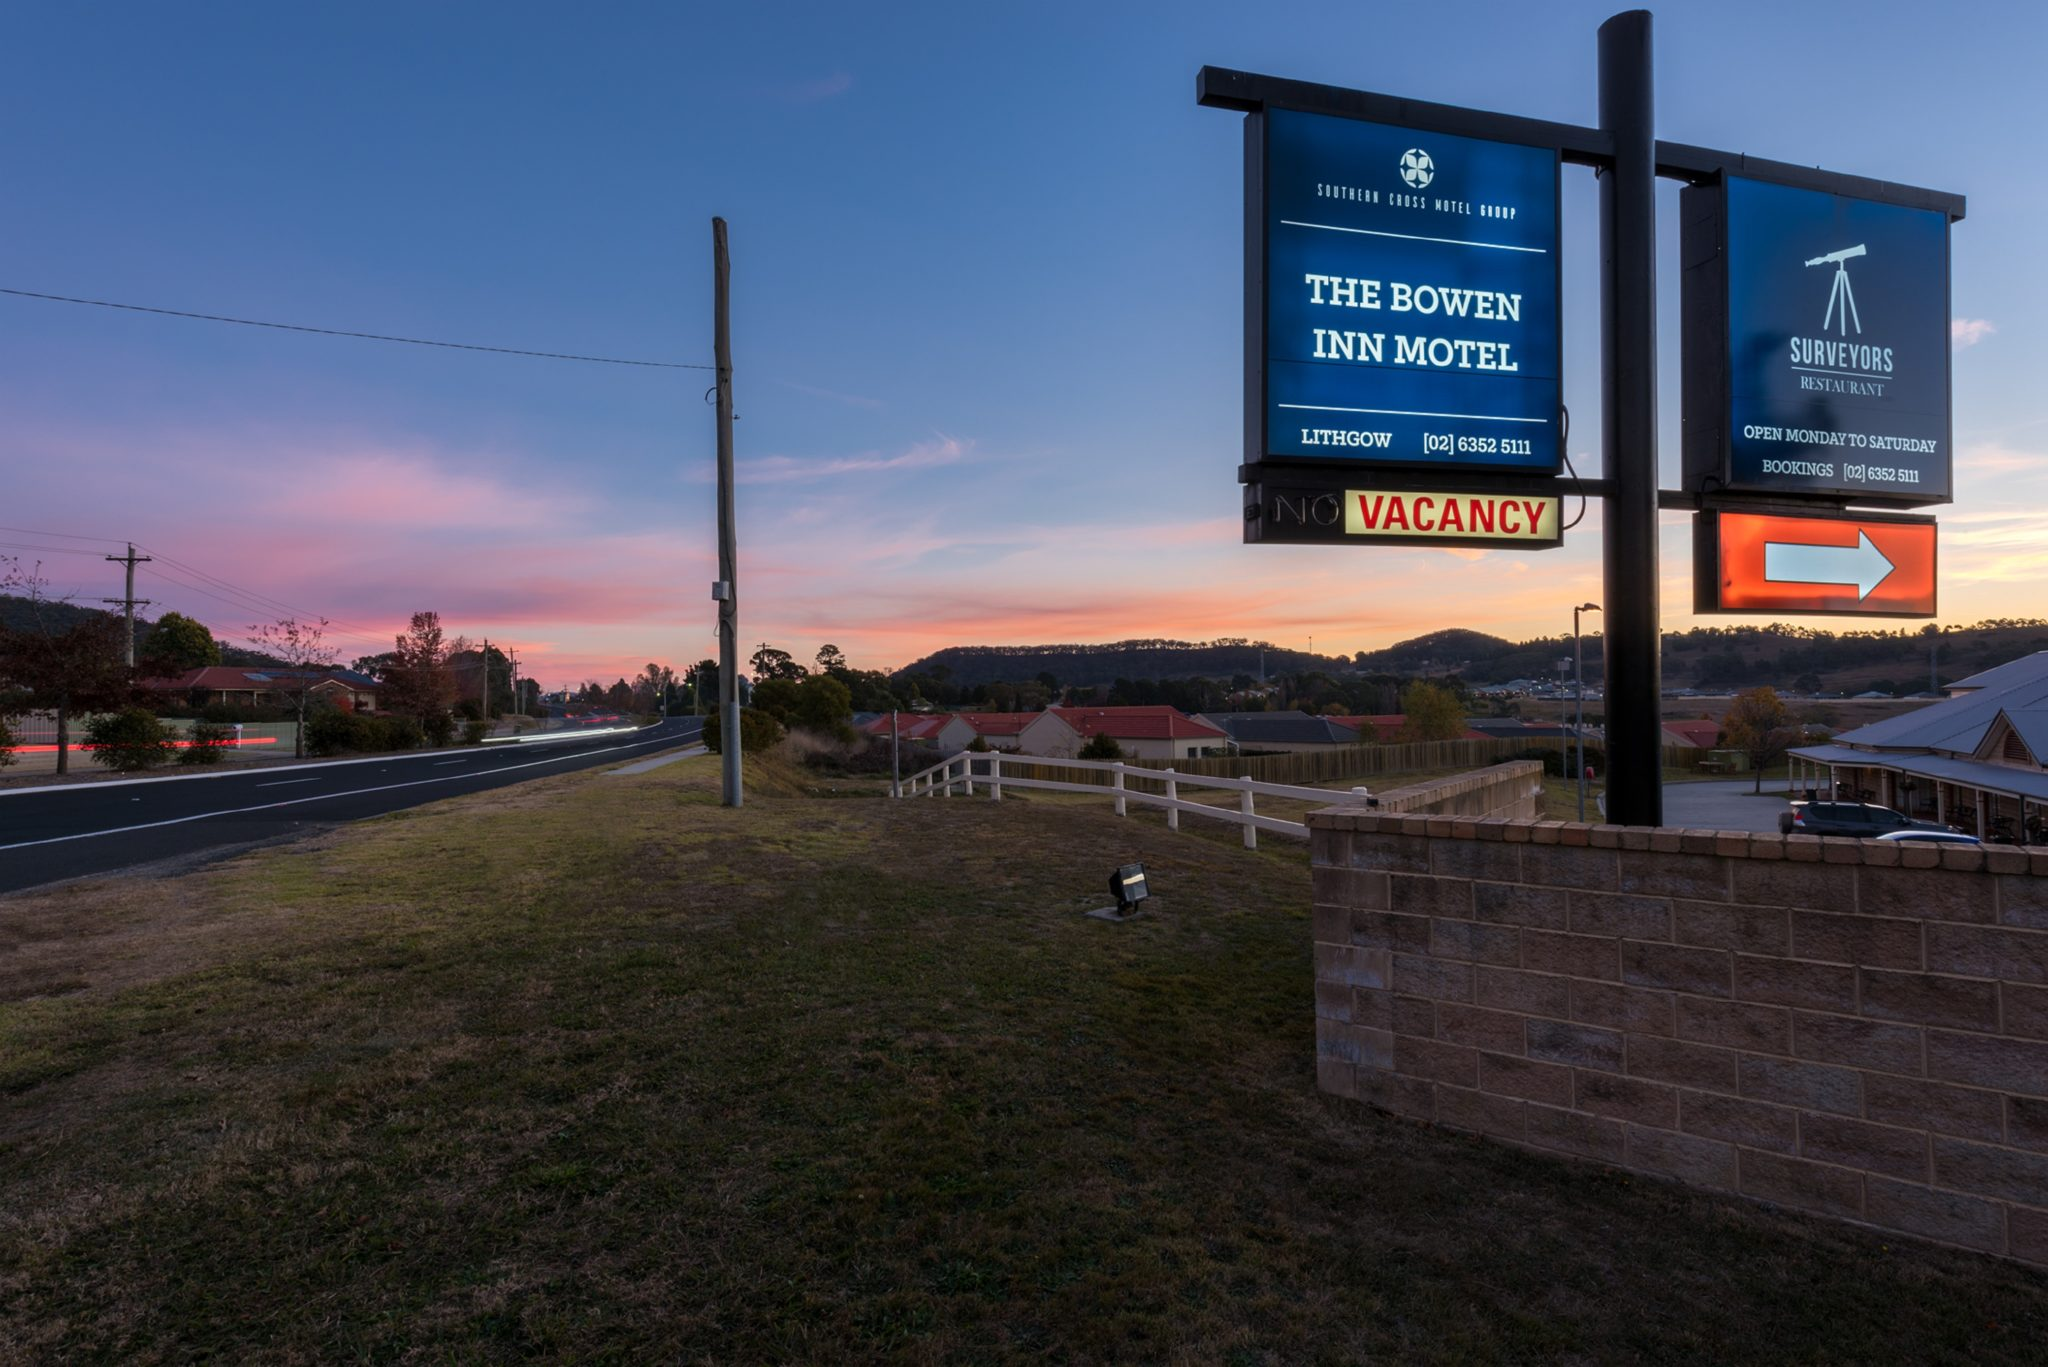 The Bowen Inn Motel is easily visible from the highway